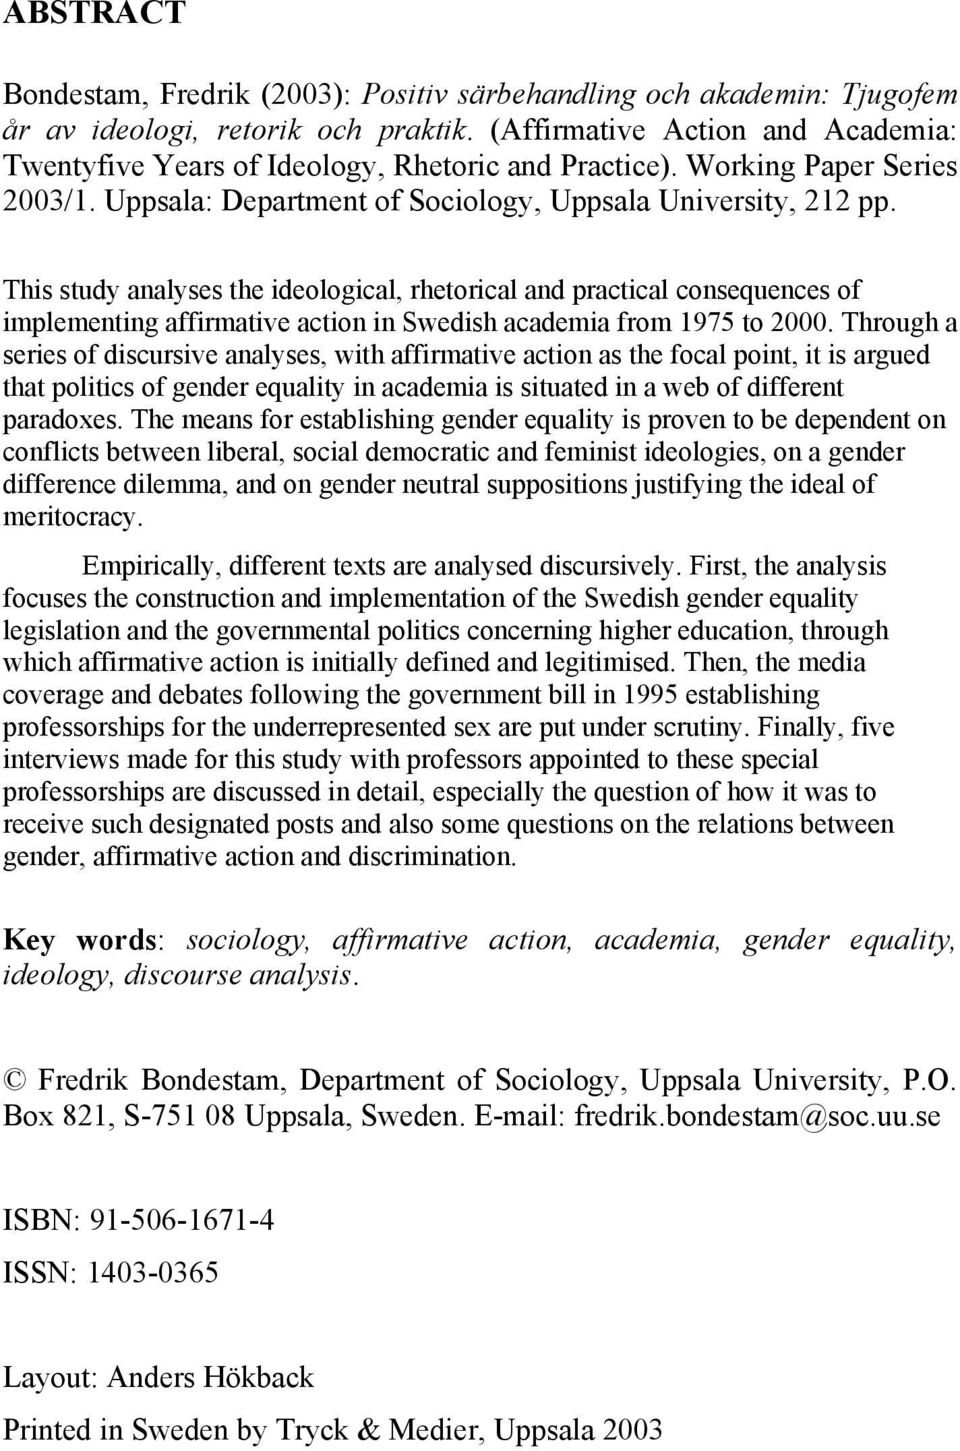 This study analyses the ideological, rhetorical and practical consequences of implementing affirmative action in Swedish academia from 1975 to 2000.